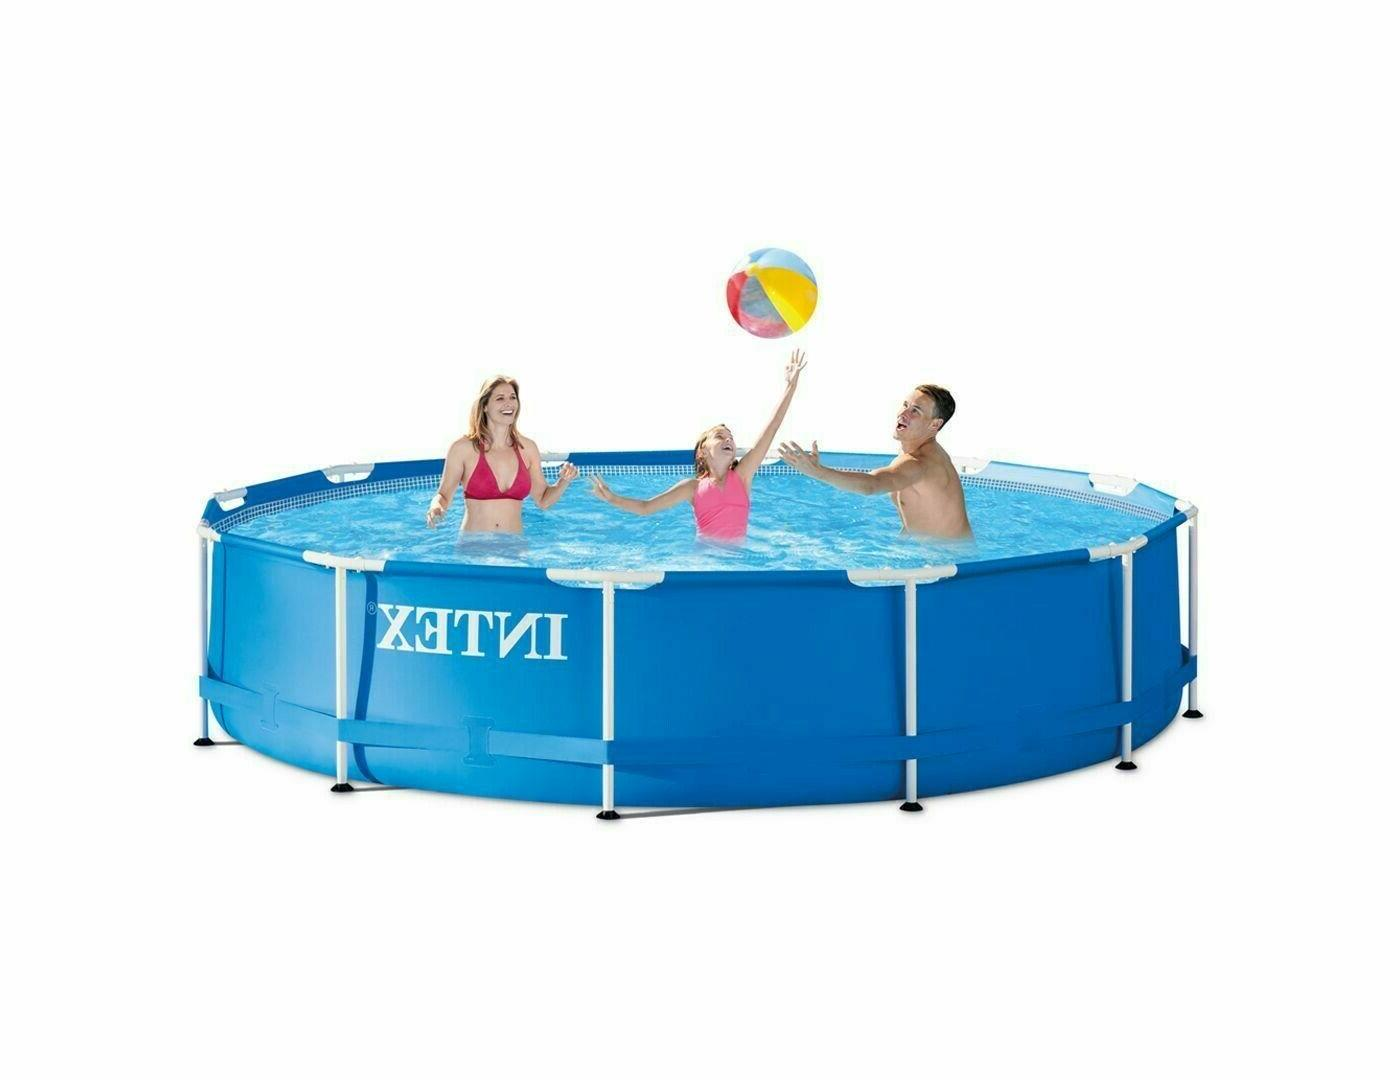 Intex 12ft 33in Above Frame Swim Summer Waves